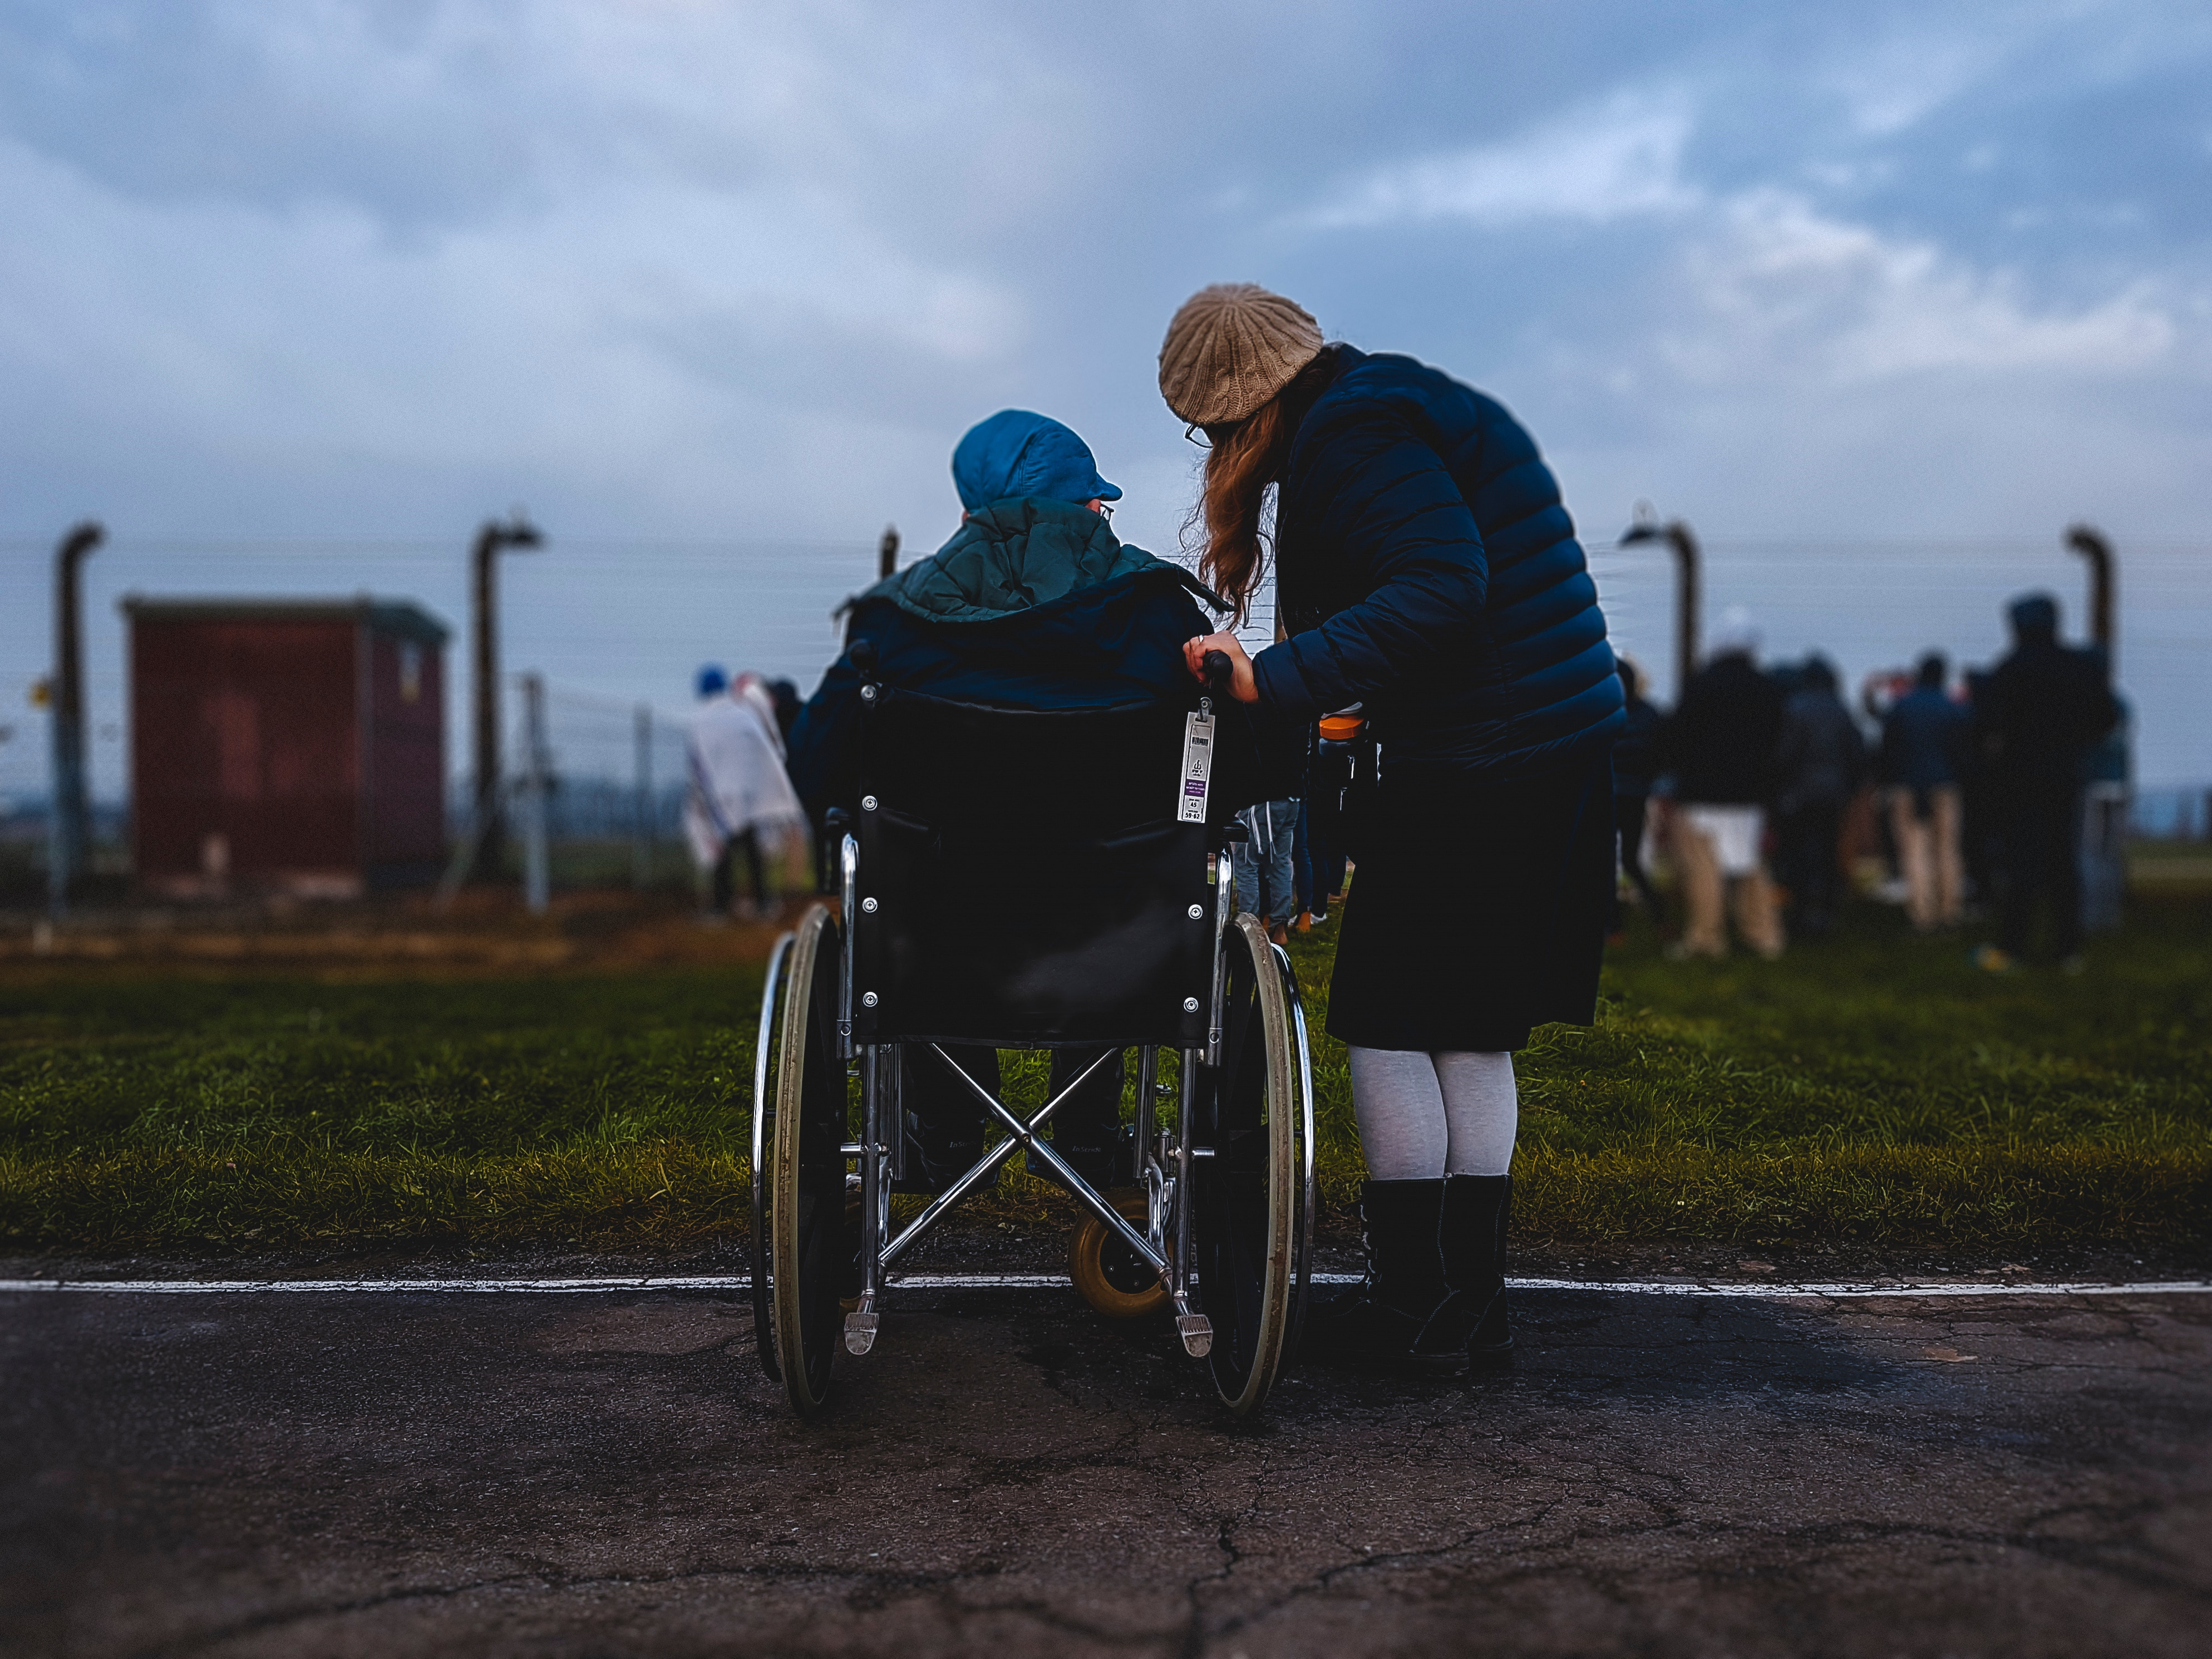 josh appel 423804 unsplash - CMS Releases New Nursing Home Special Focus Facility List